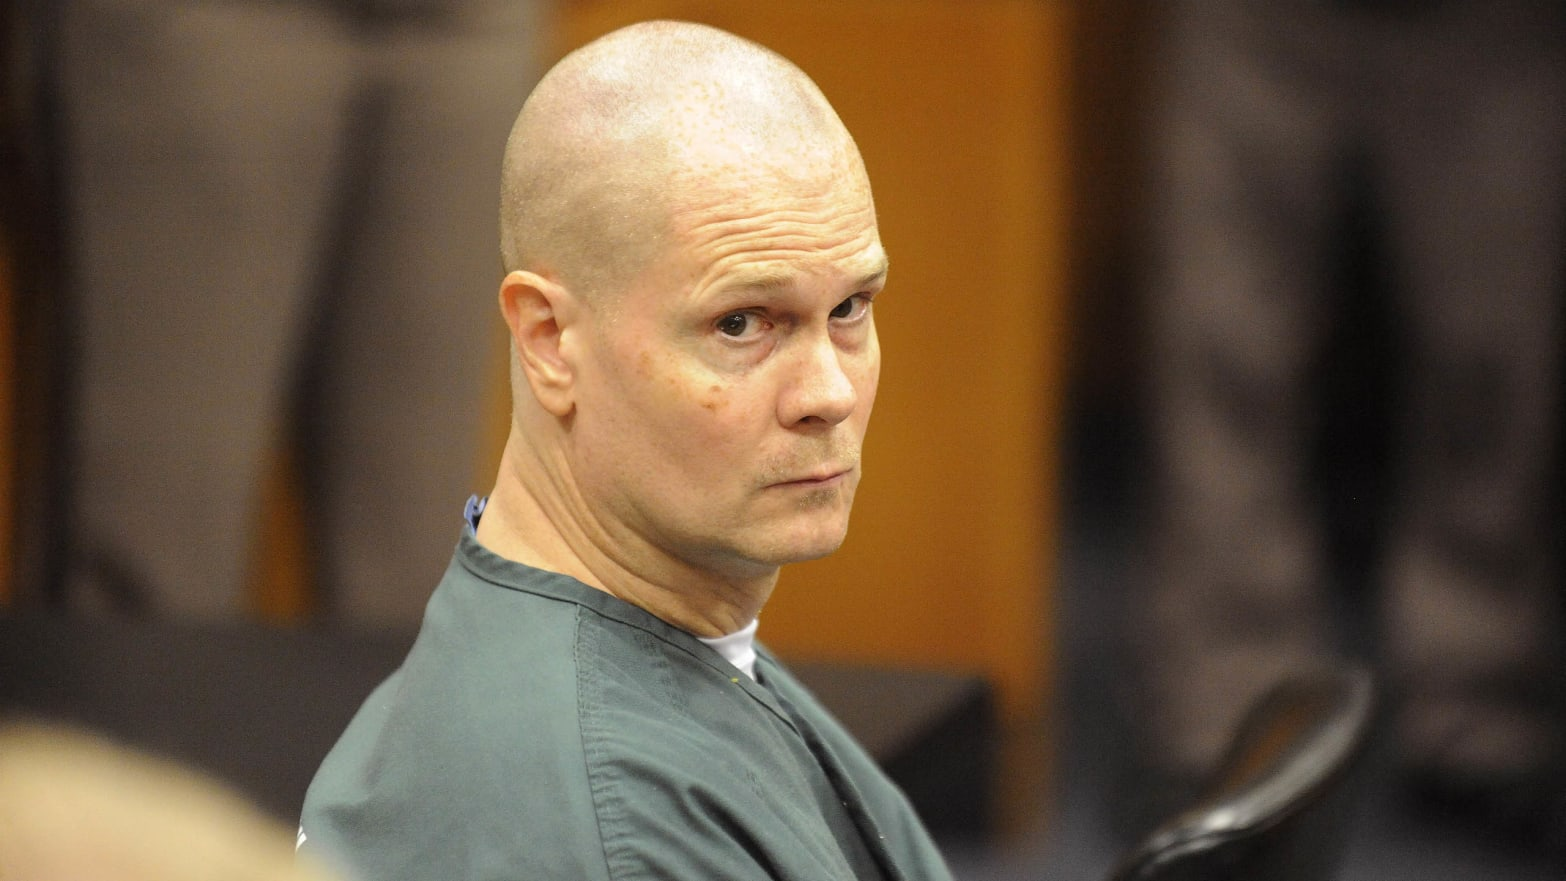 White Boy Rick', Teen Cocaine Legend, Is Going Free After 30